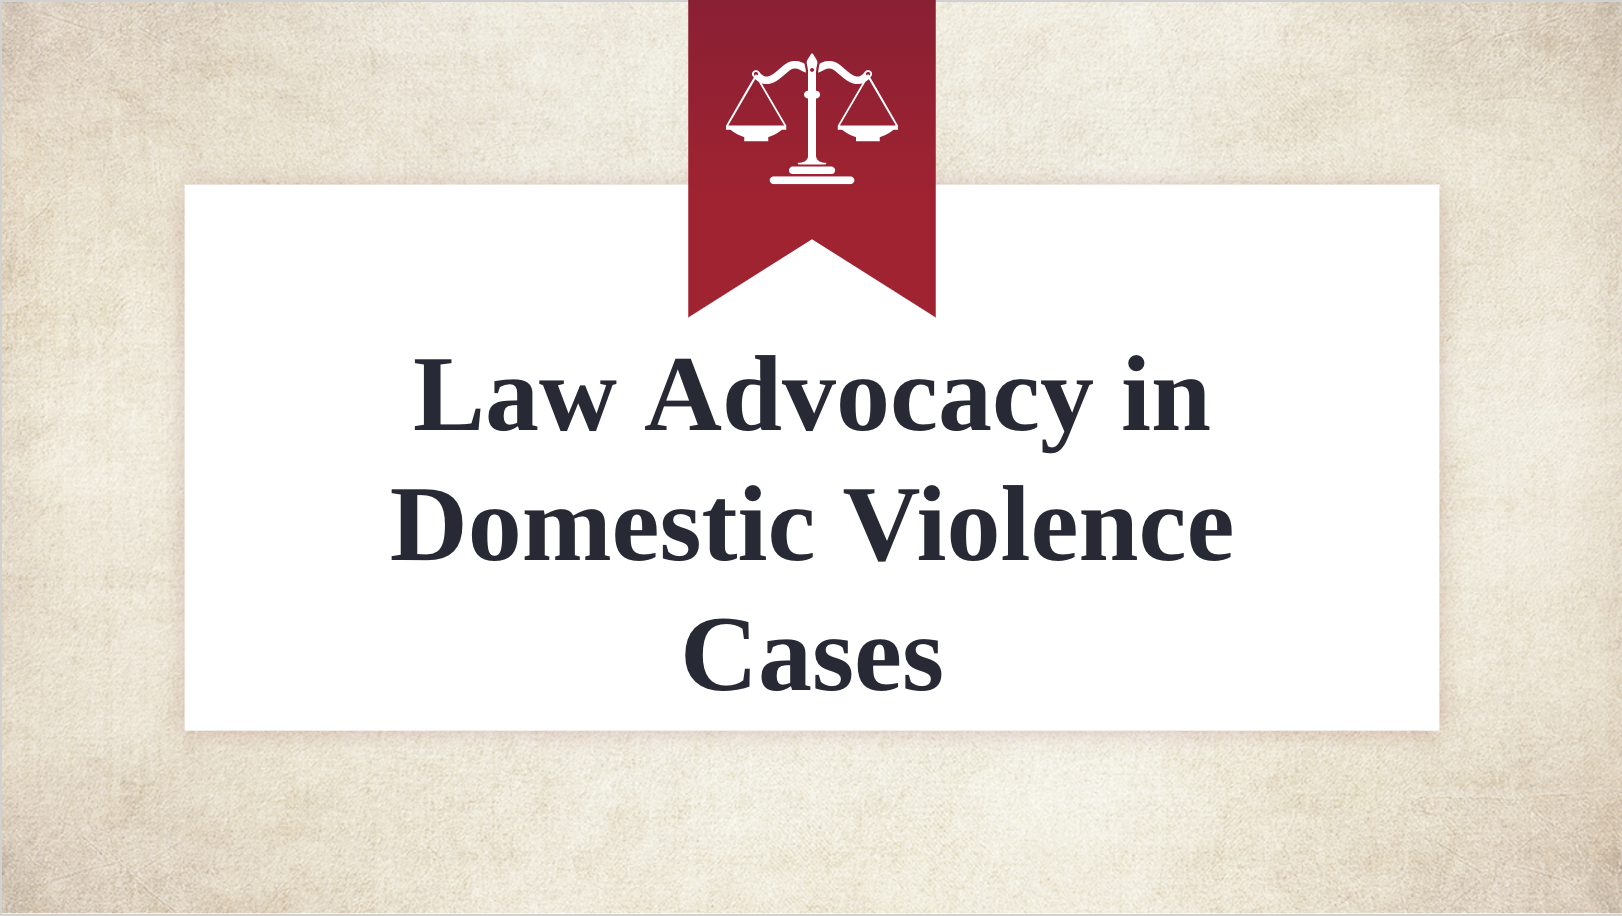 Law Advocacy in DV Cases